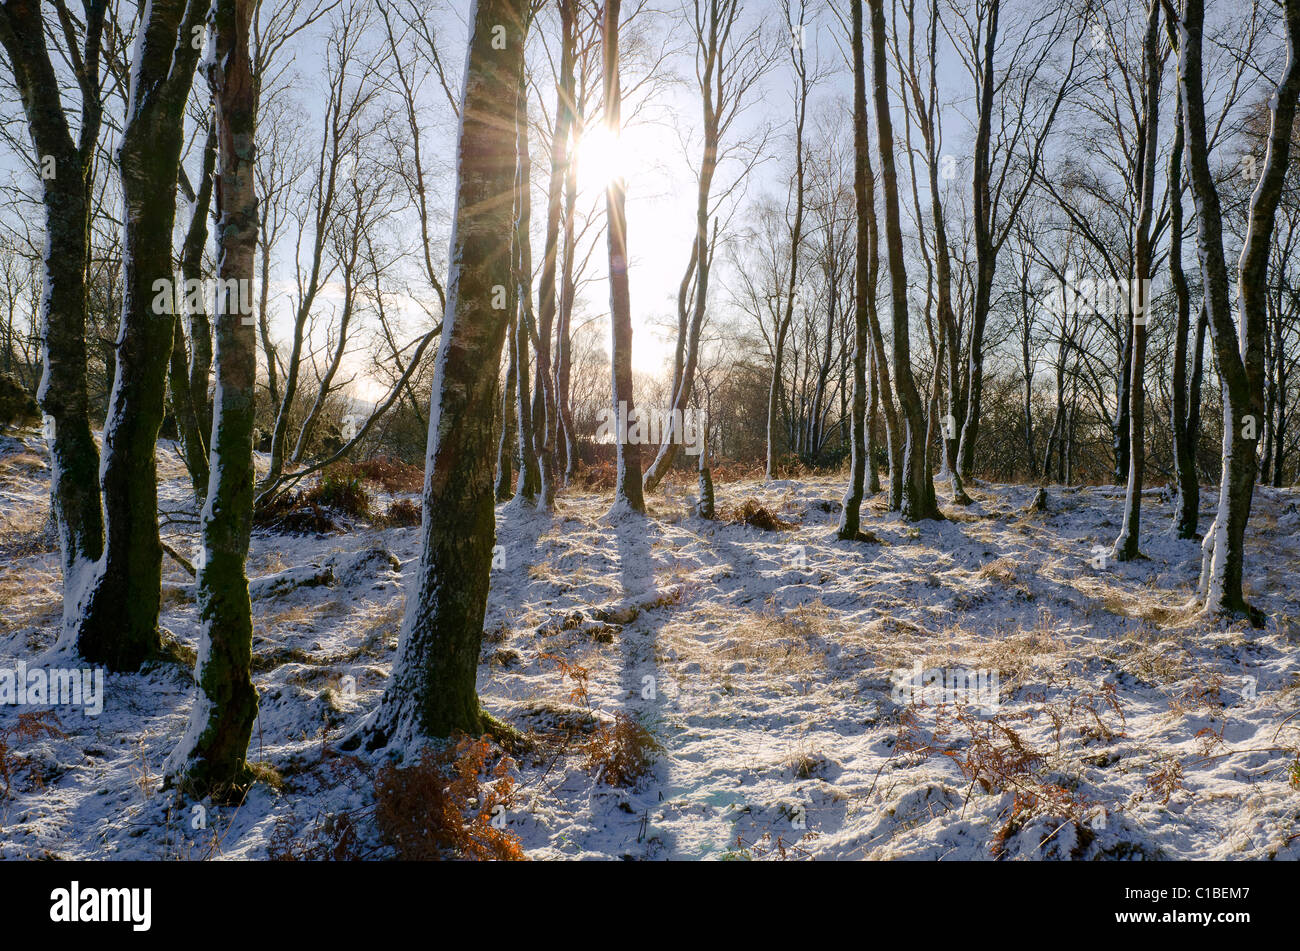 wintery scene with birch copse and low sun glinting through trees, Galloway - Stock Image